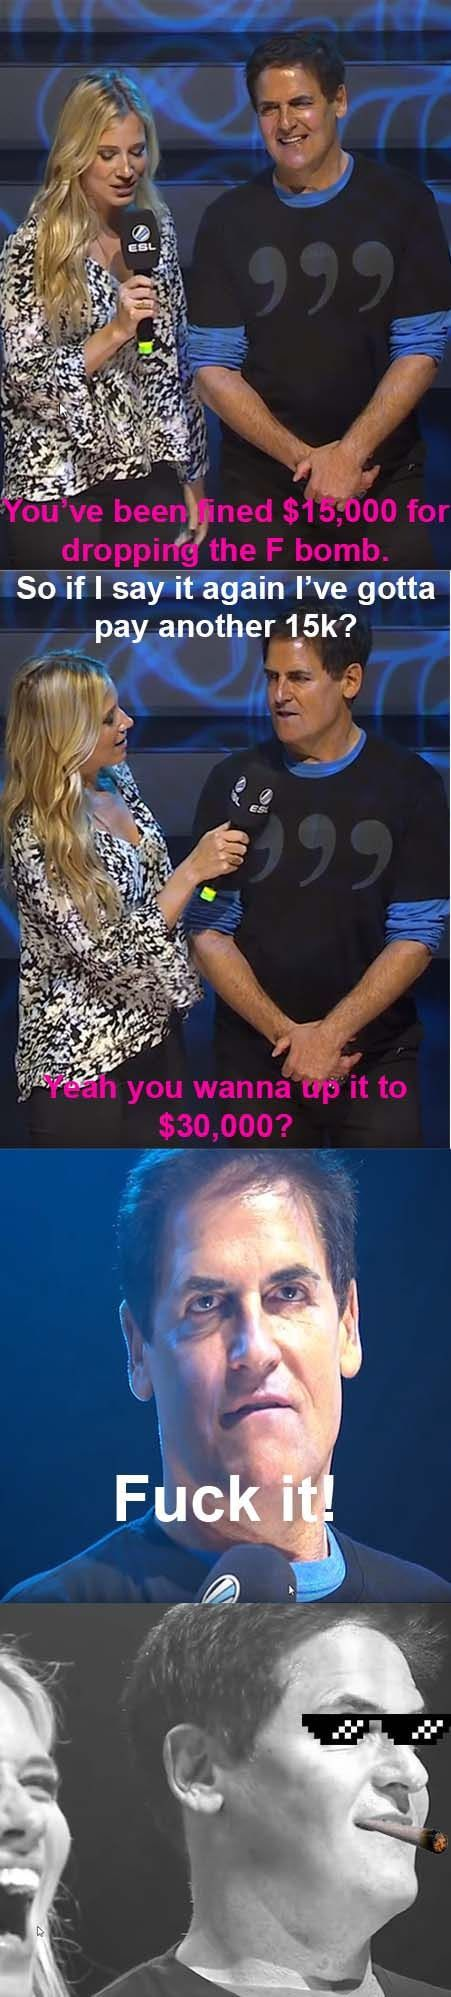 Mark Cuban fined for saying f**k in LoL championship - 9GAG